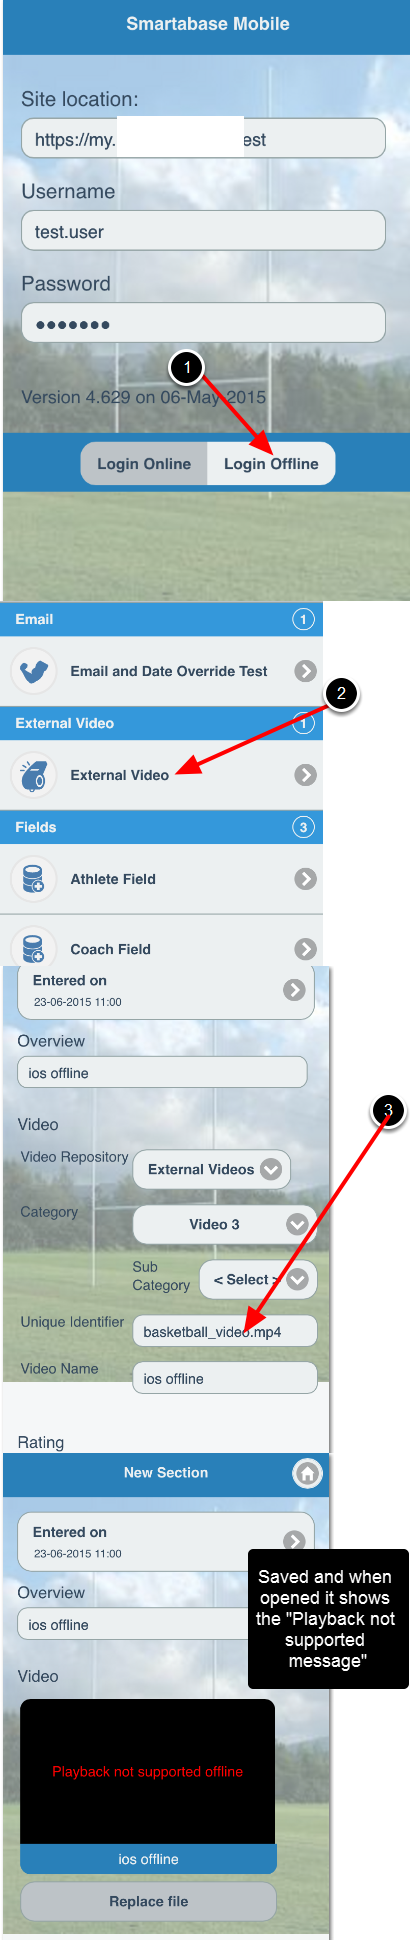 An example of the video being entered offline on iOS